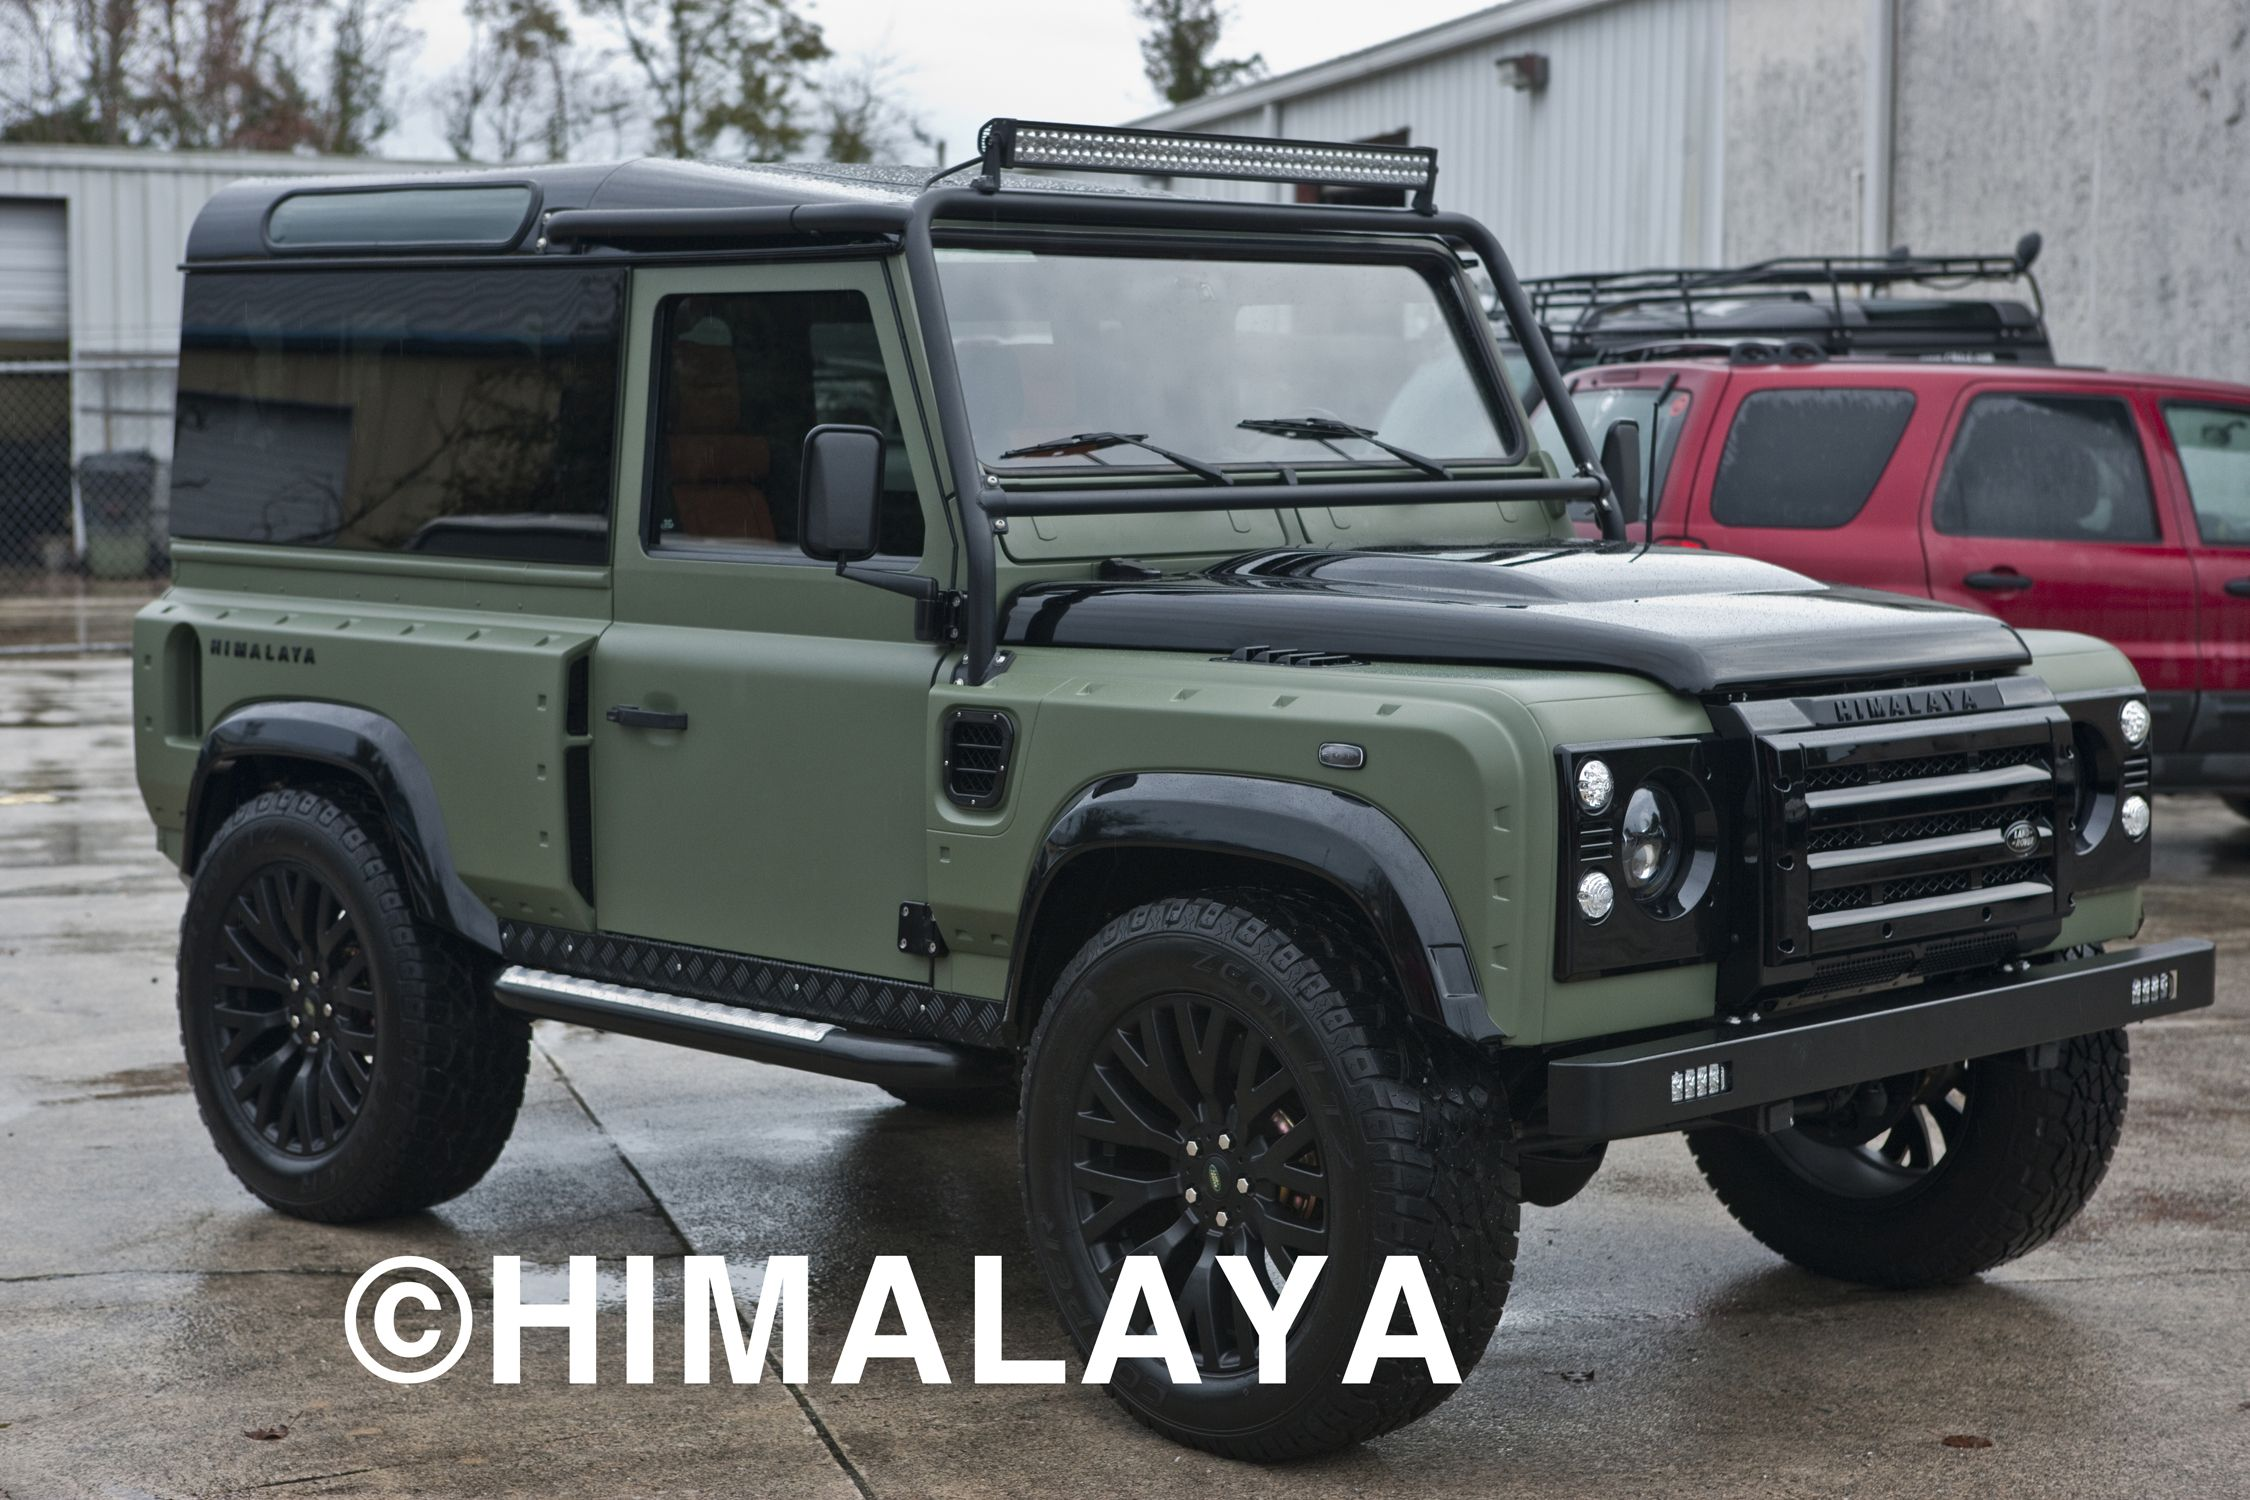 himalaya 4x4 custom land rover himalaya land rovers land rover defender 4x4 land rover. Black Bedroom Furniture Sets. Home Design Ideas